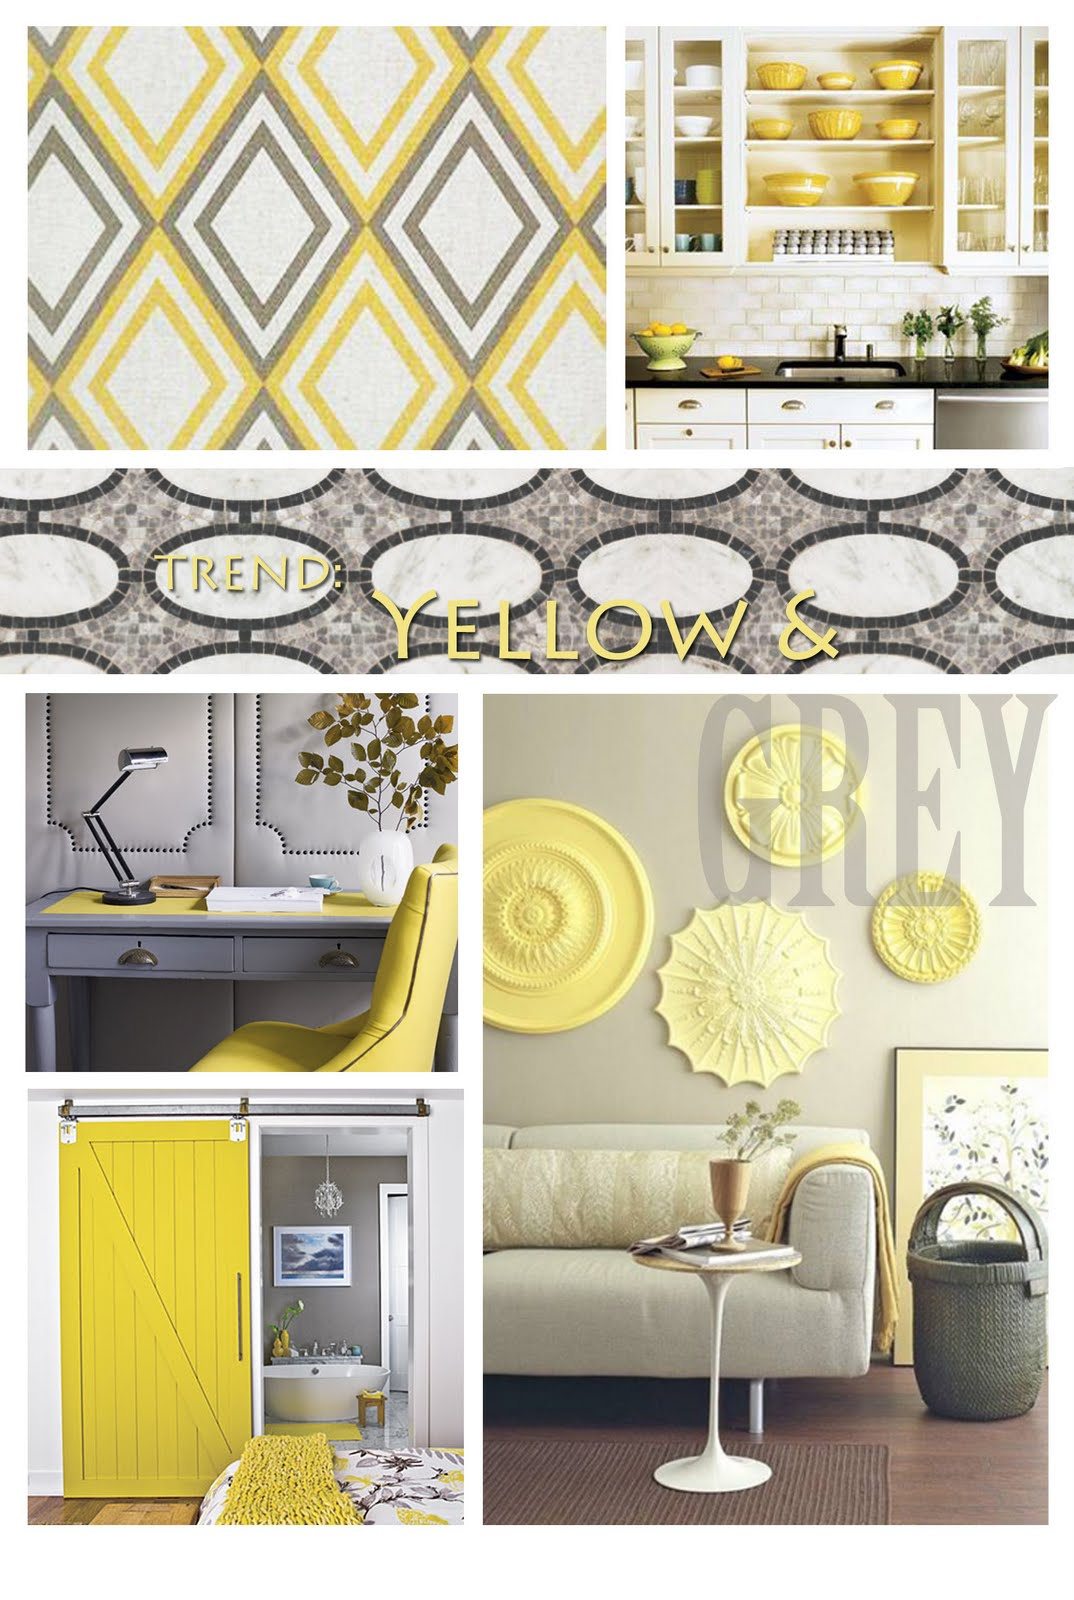 Living Room Decorating Ideas Yellow Walls light gray and yellow color scheme calm fall decorating ideas